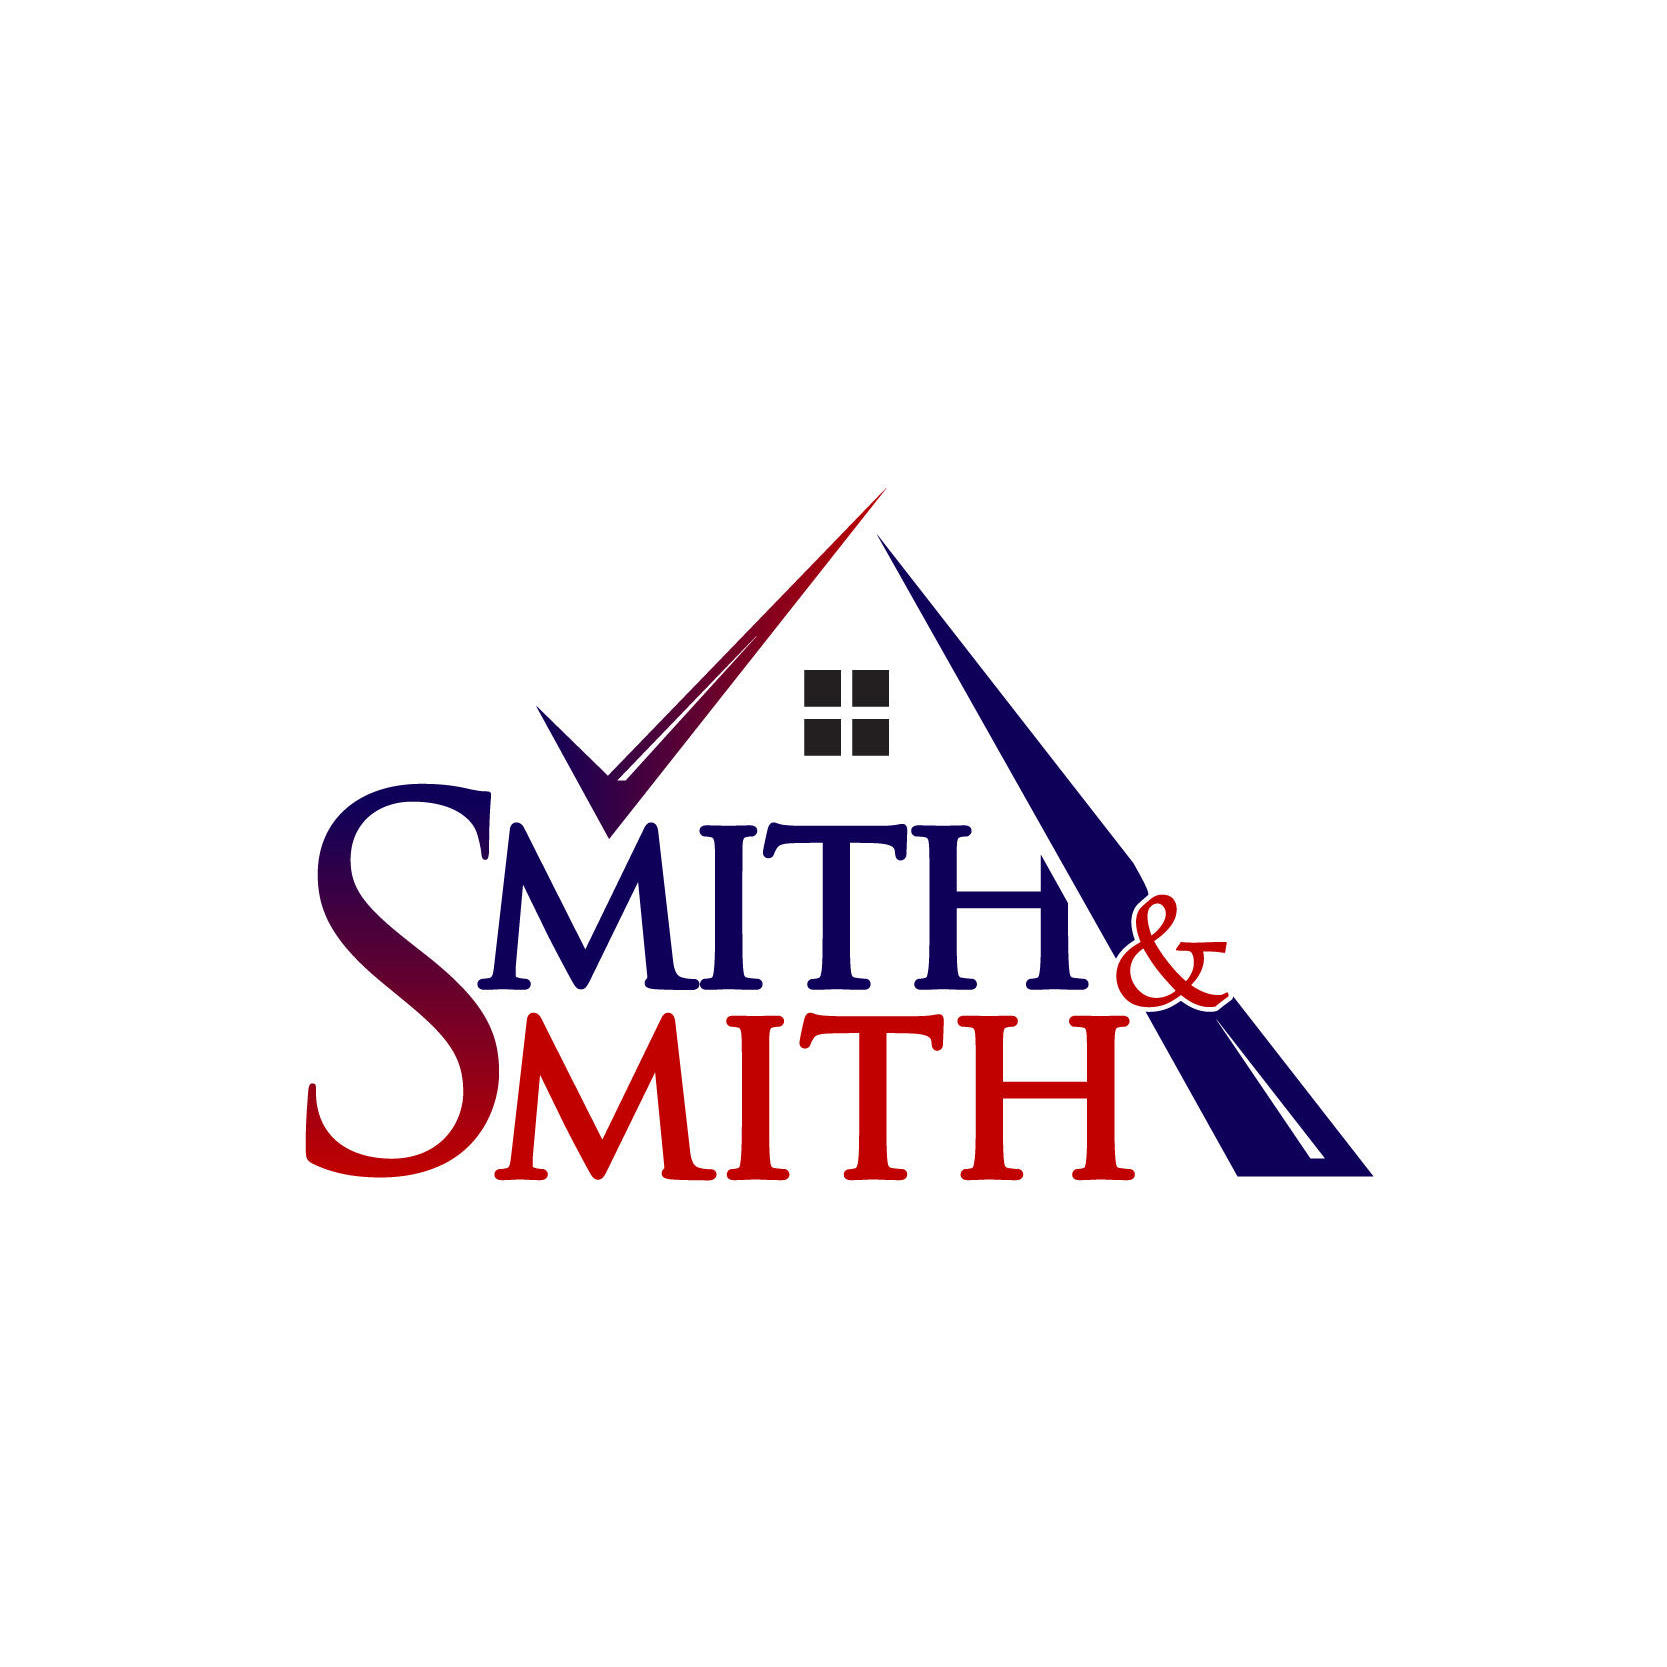 Smith & Smith Contracting LLC